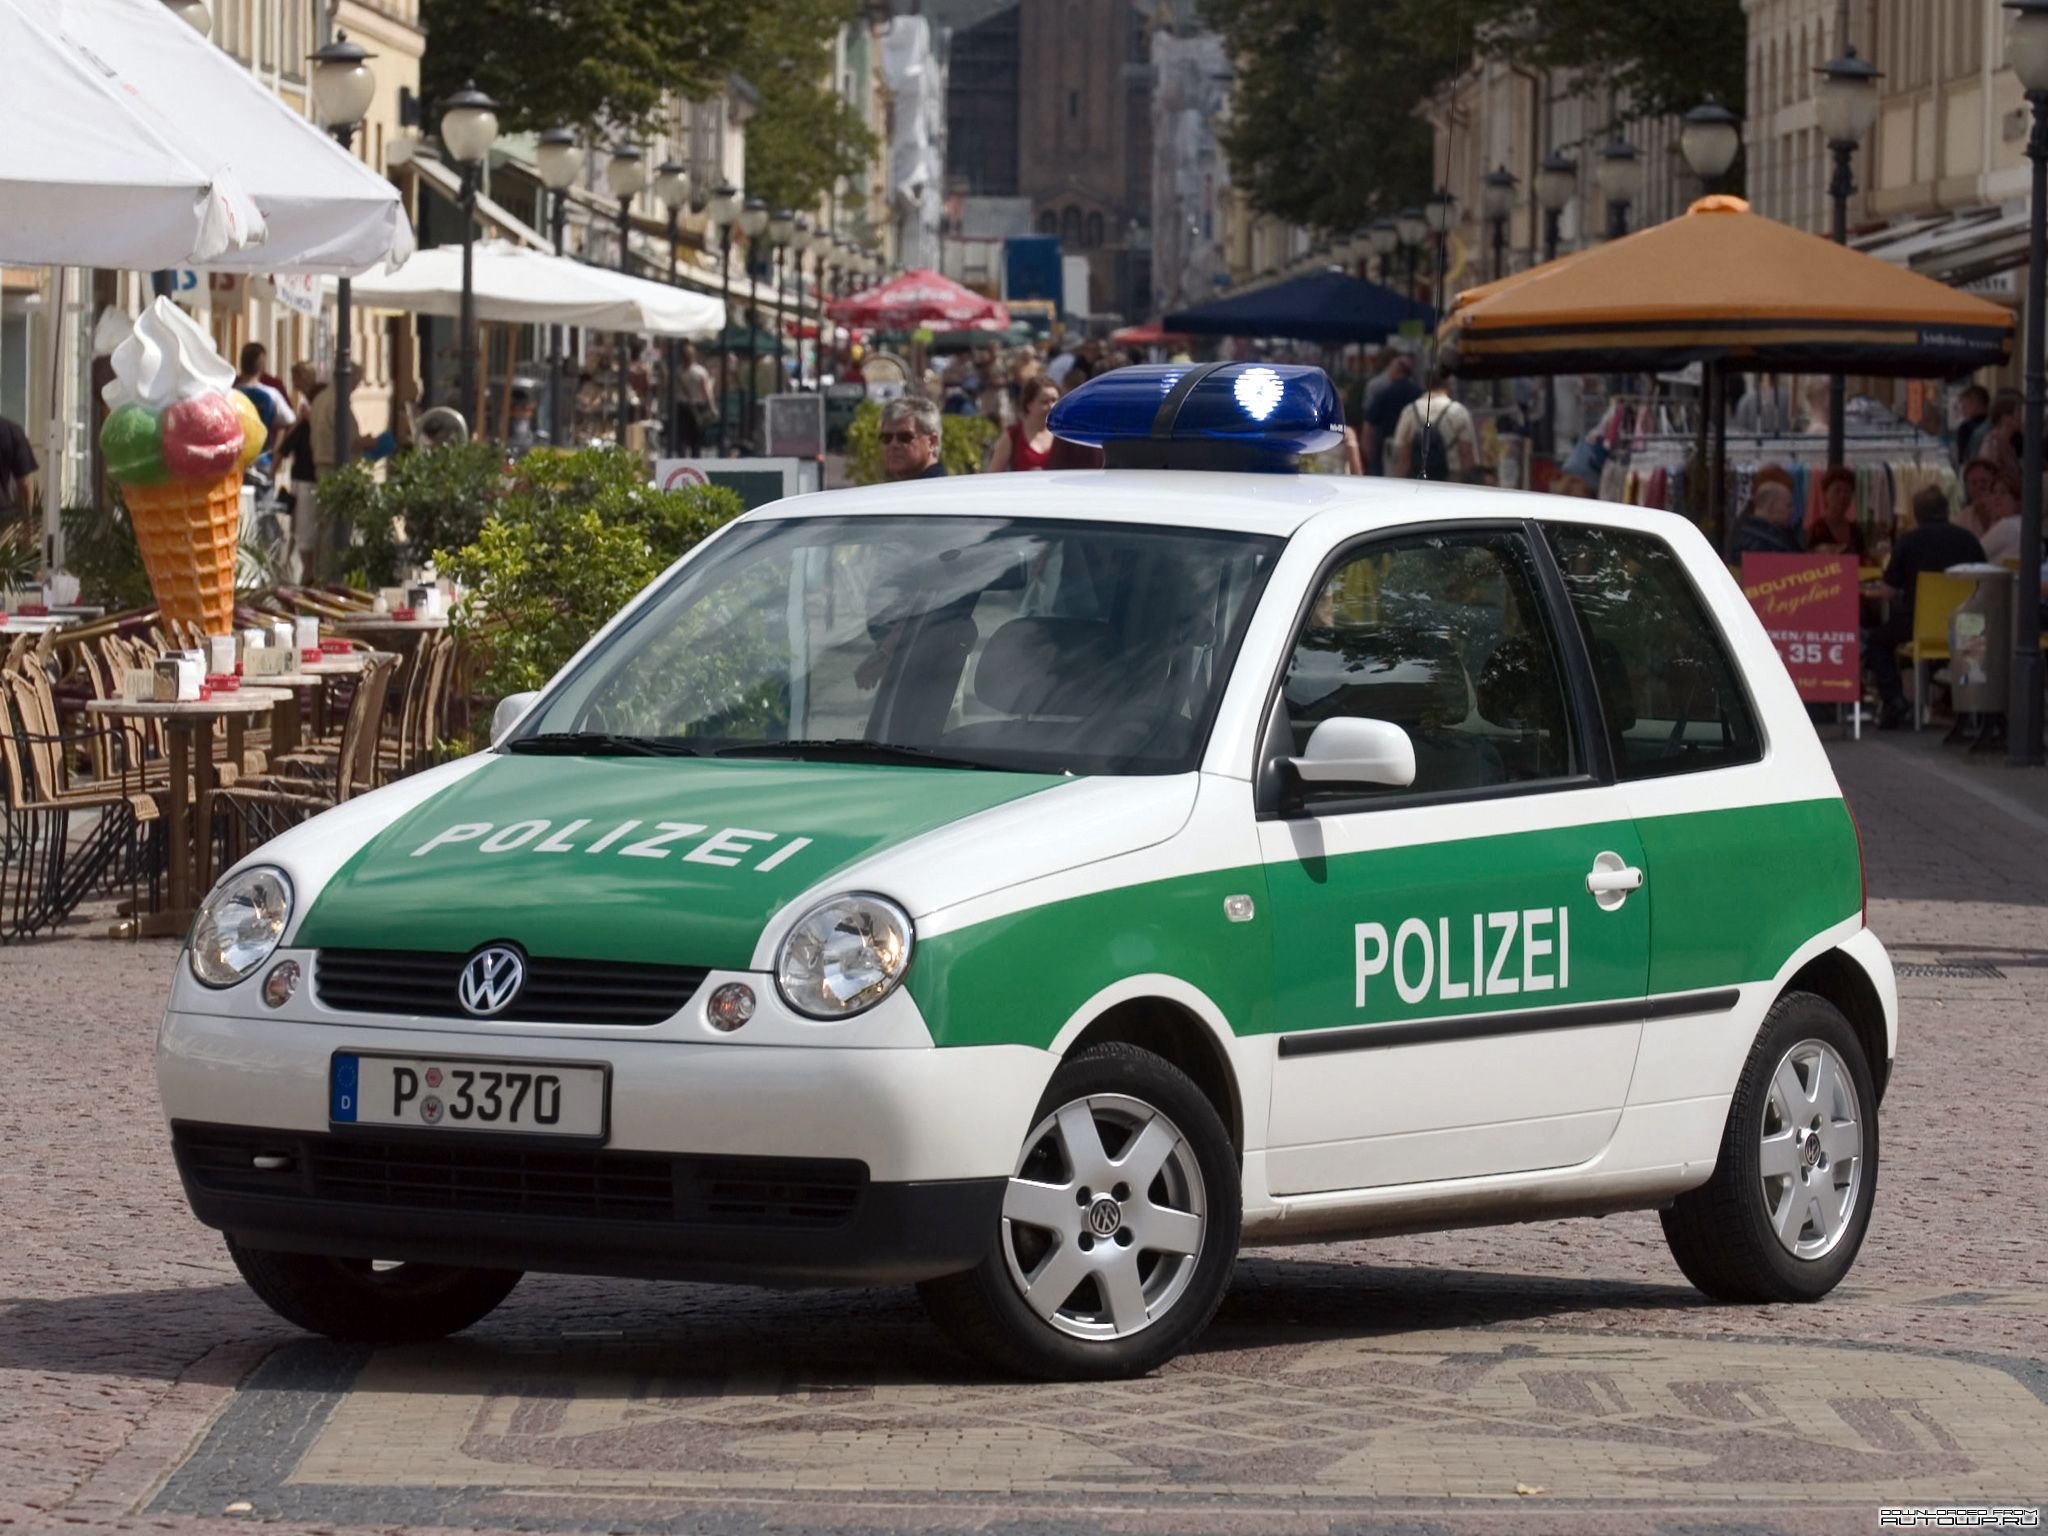 vw lupo 1 4 16v polizei potsdam 2002 police cars. Black Bedroom Furniture Sets. Home Design Ideas